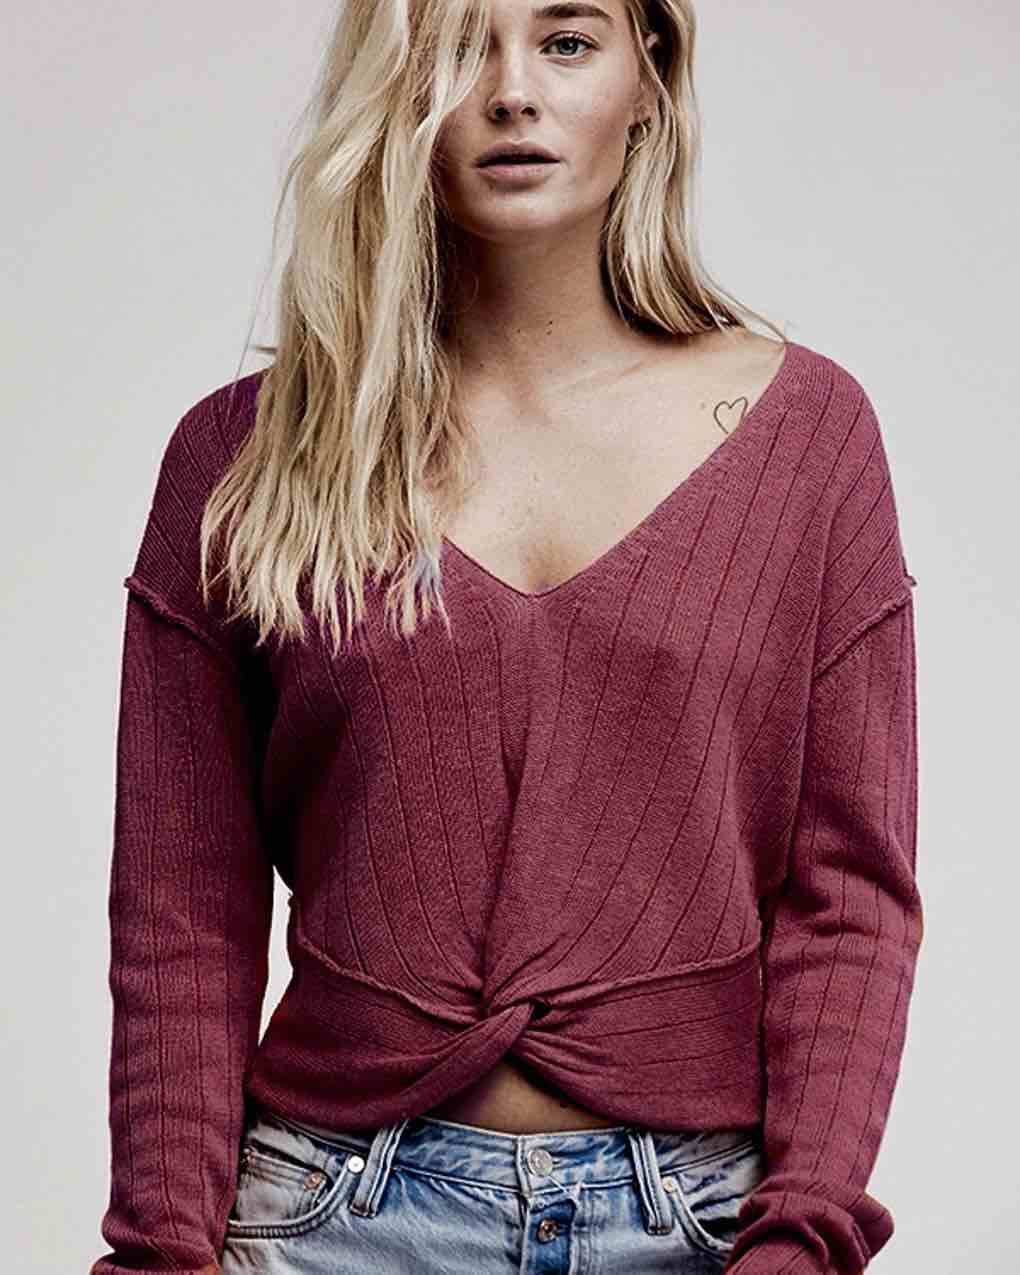 Free People Got Me Twisted Sweater Wine With Images Women Clothing Boutique Womens Wholesale Clothing Fashion Clothes Women